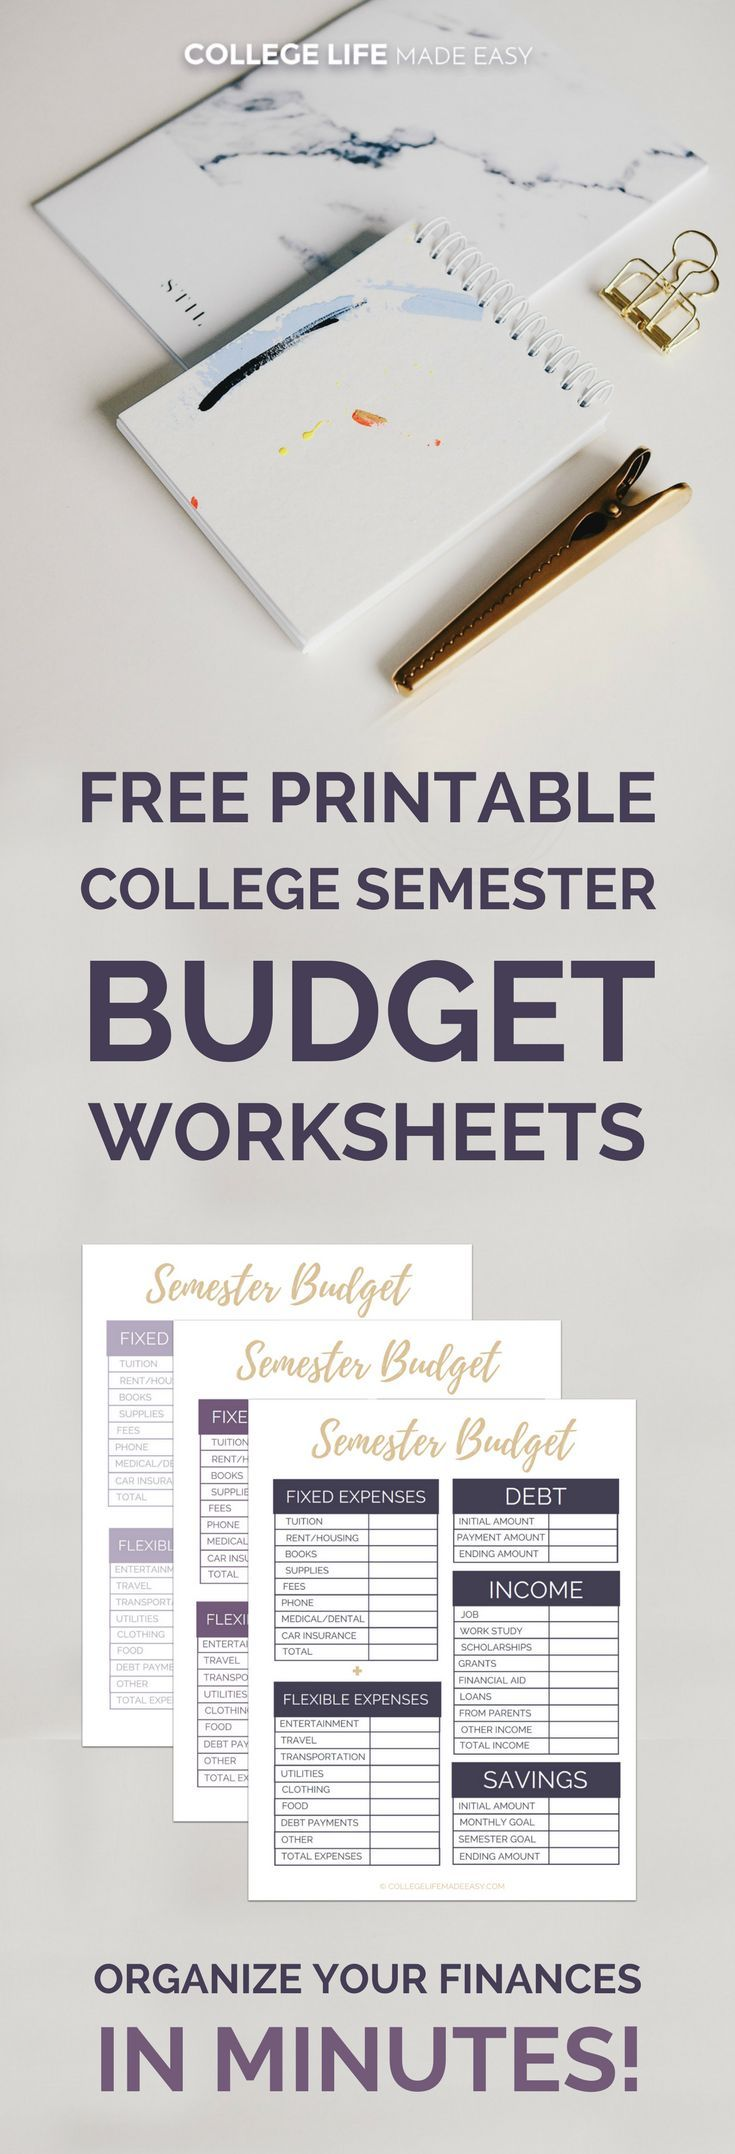 free printable college semester budget worksheets organize your